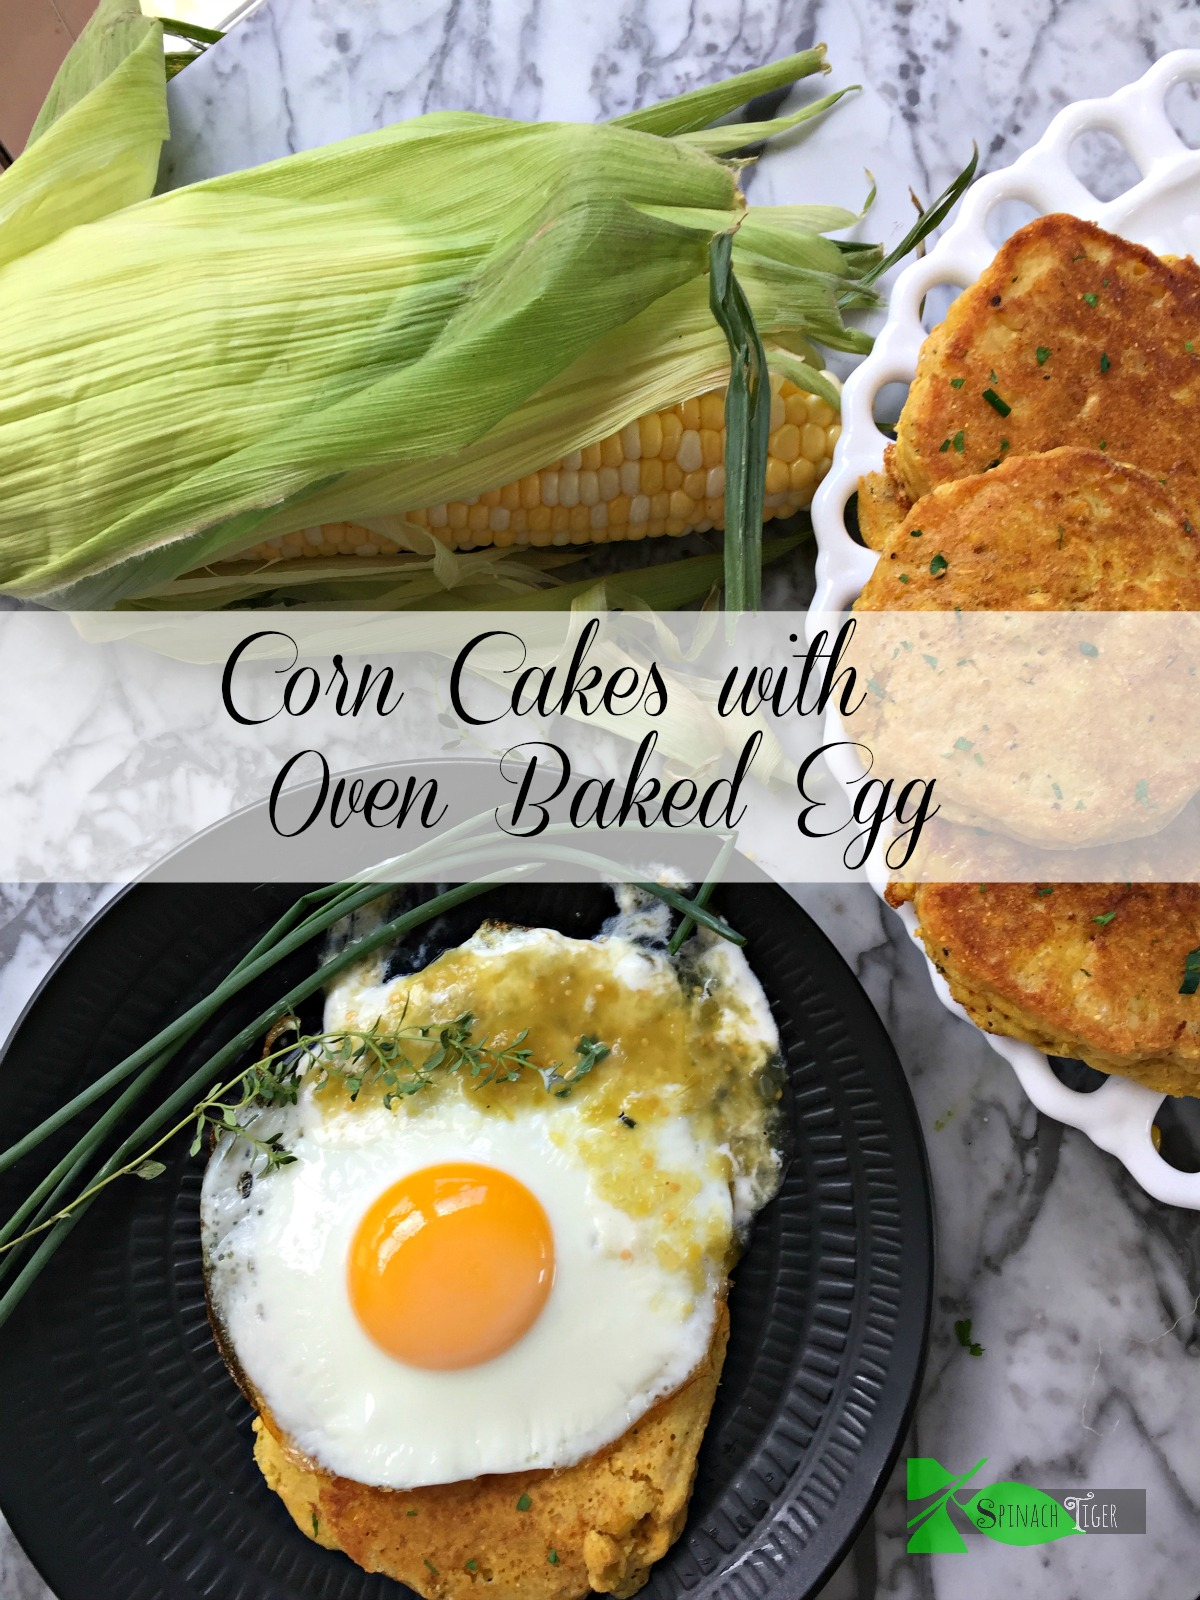 Southern Fried Corn Cakes Recipe, Oven Baked Egg from Spinach TIger